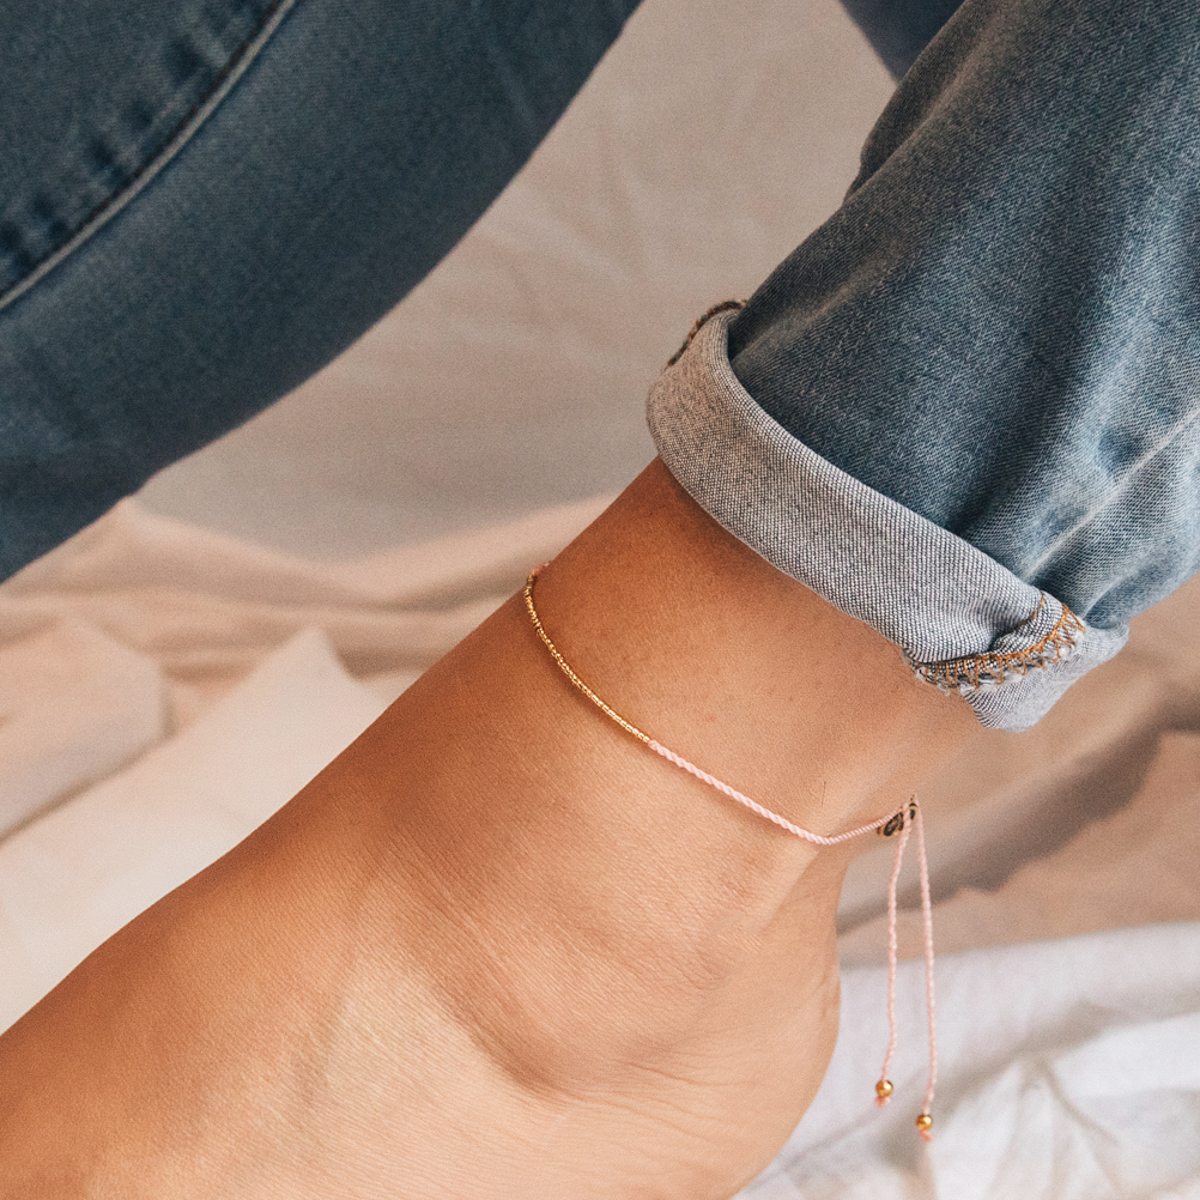 Lyla Beaded Anklet - Pineapple Island